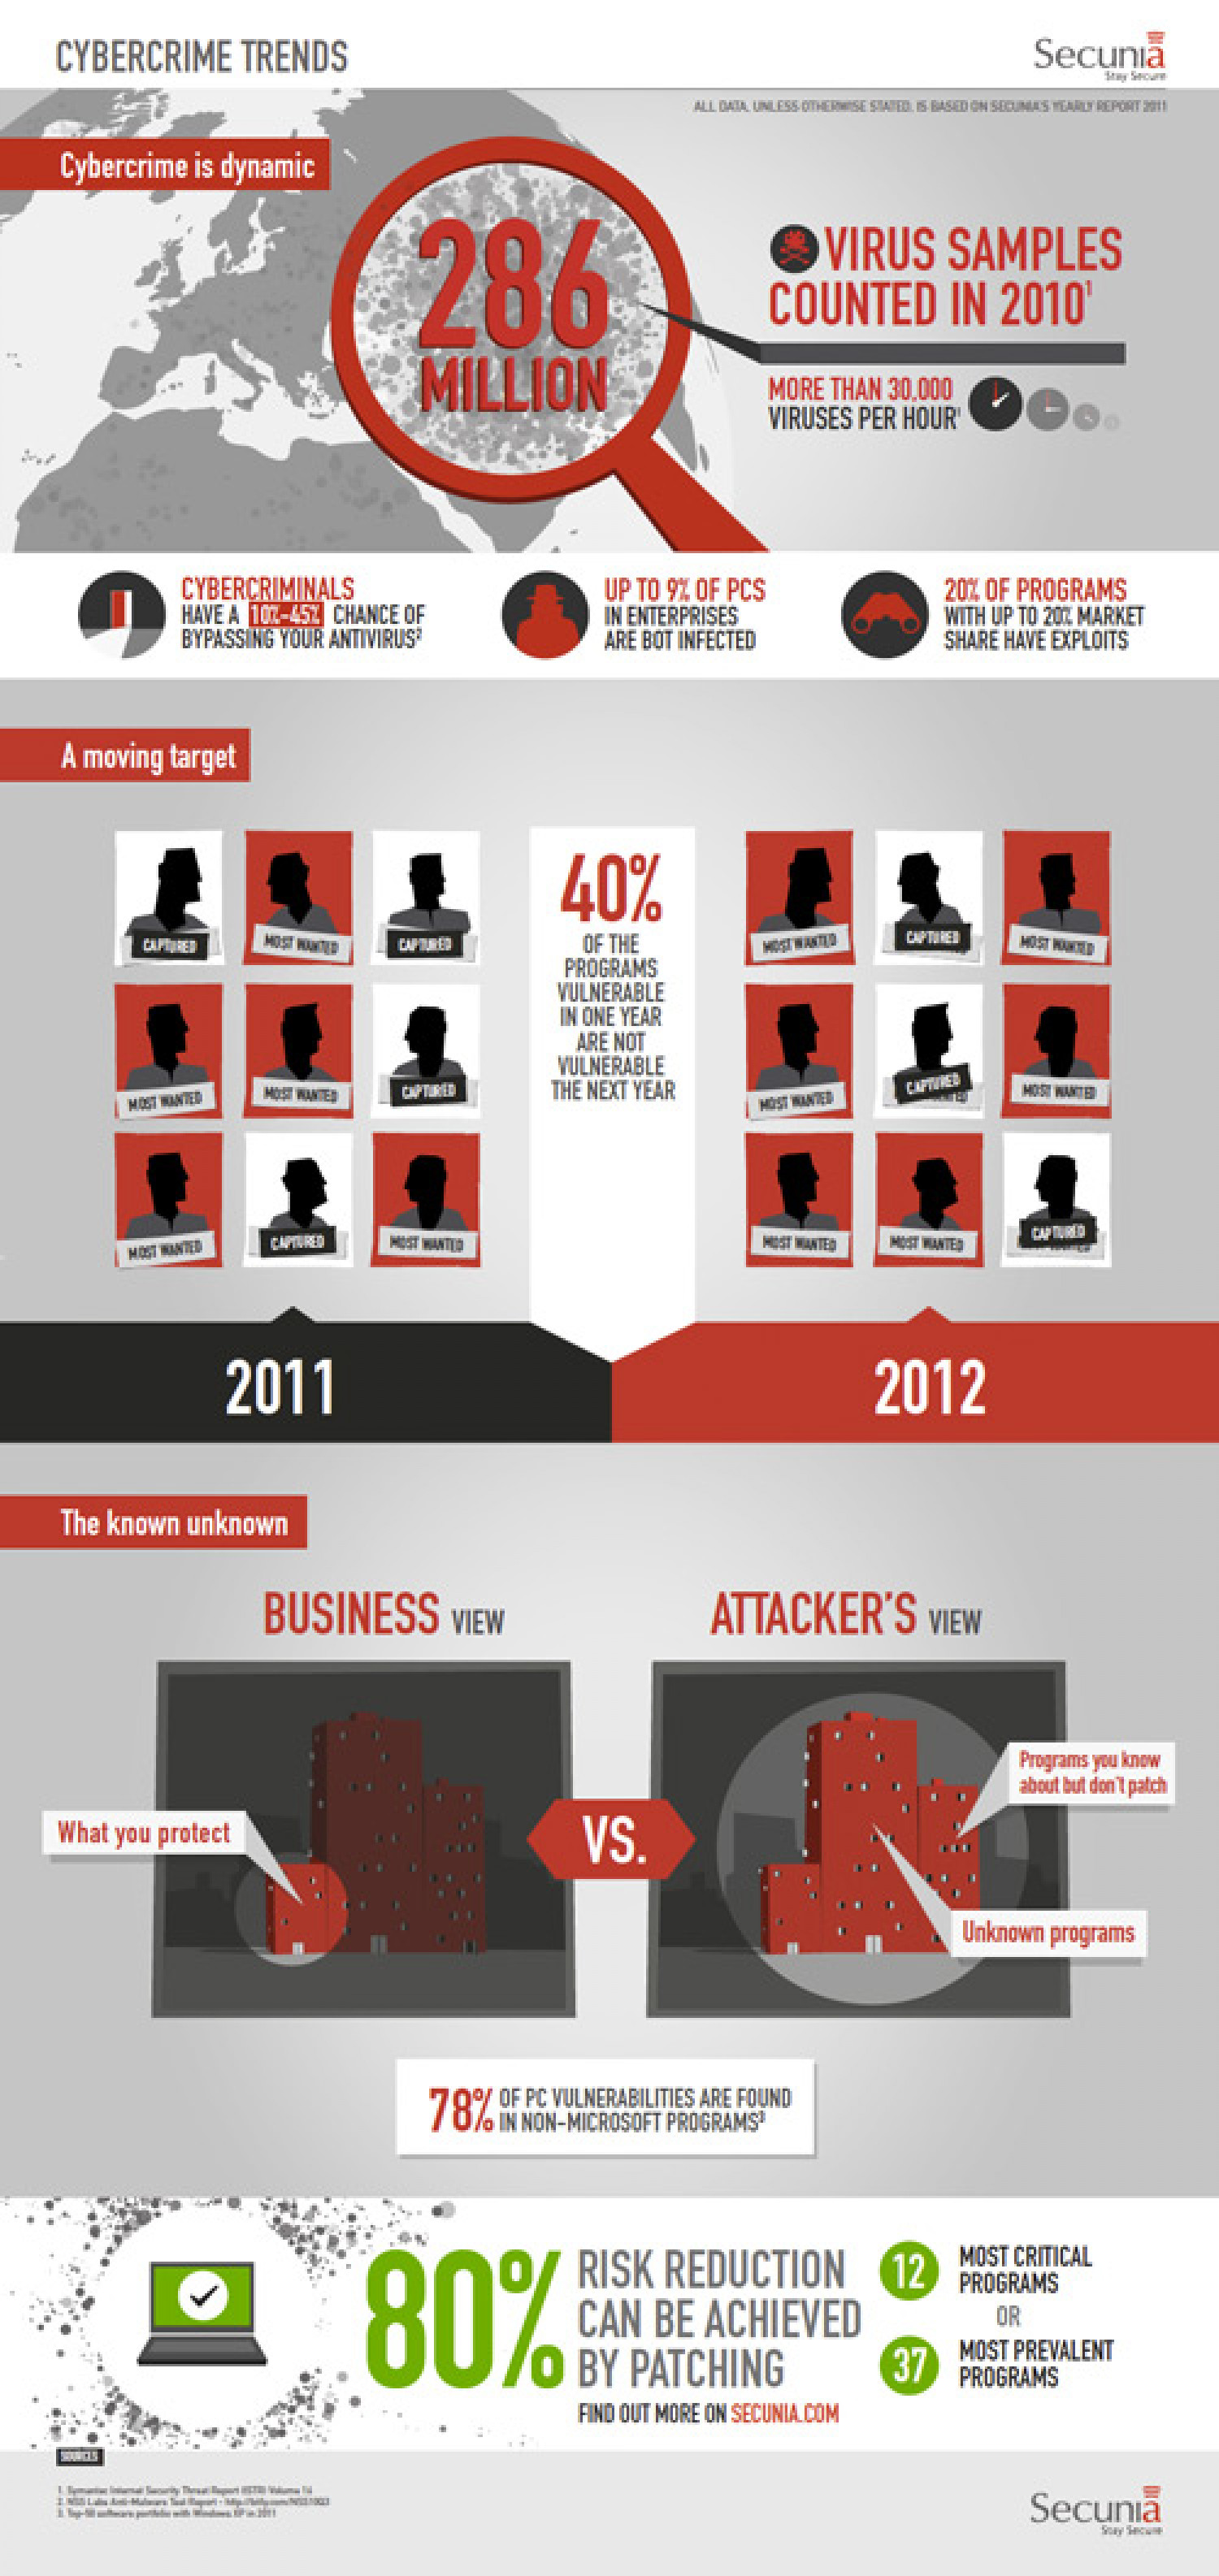 Secunia's Cybercrime Trends in Business Infographic